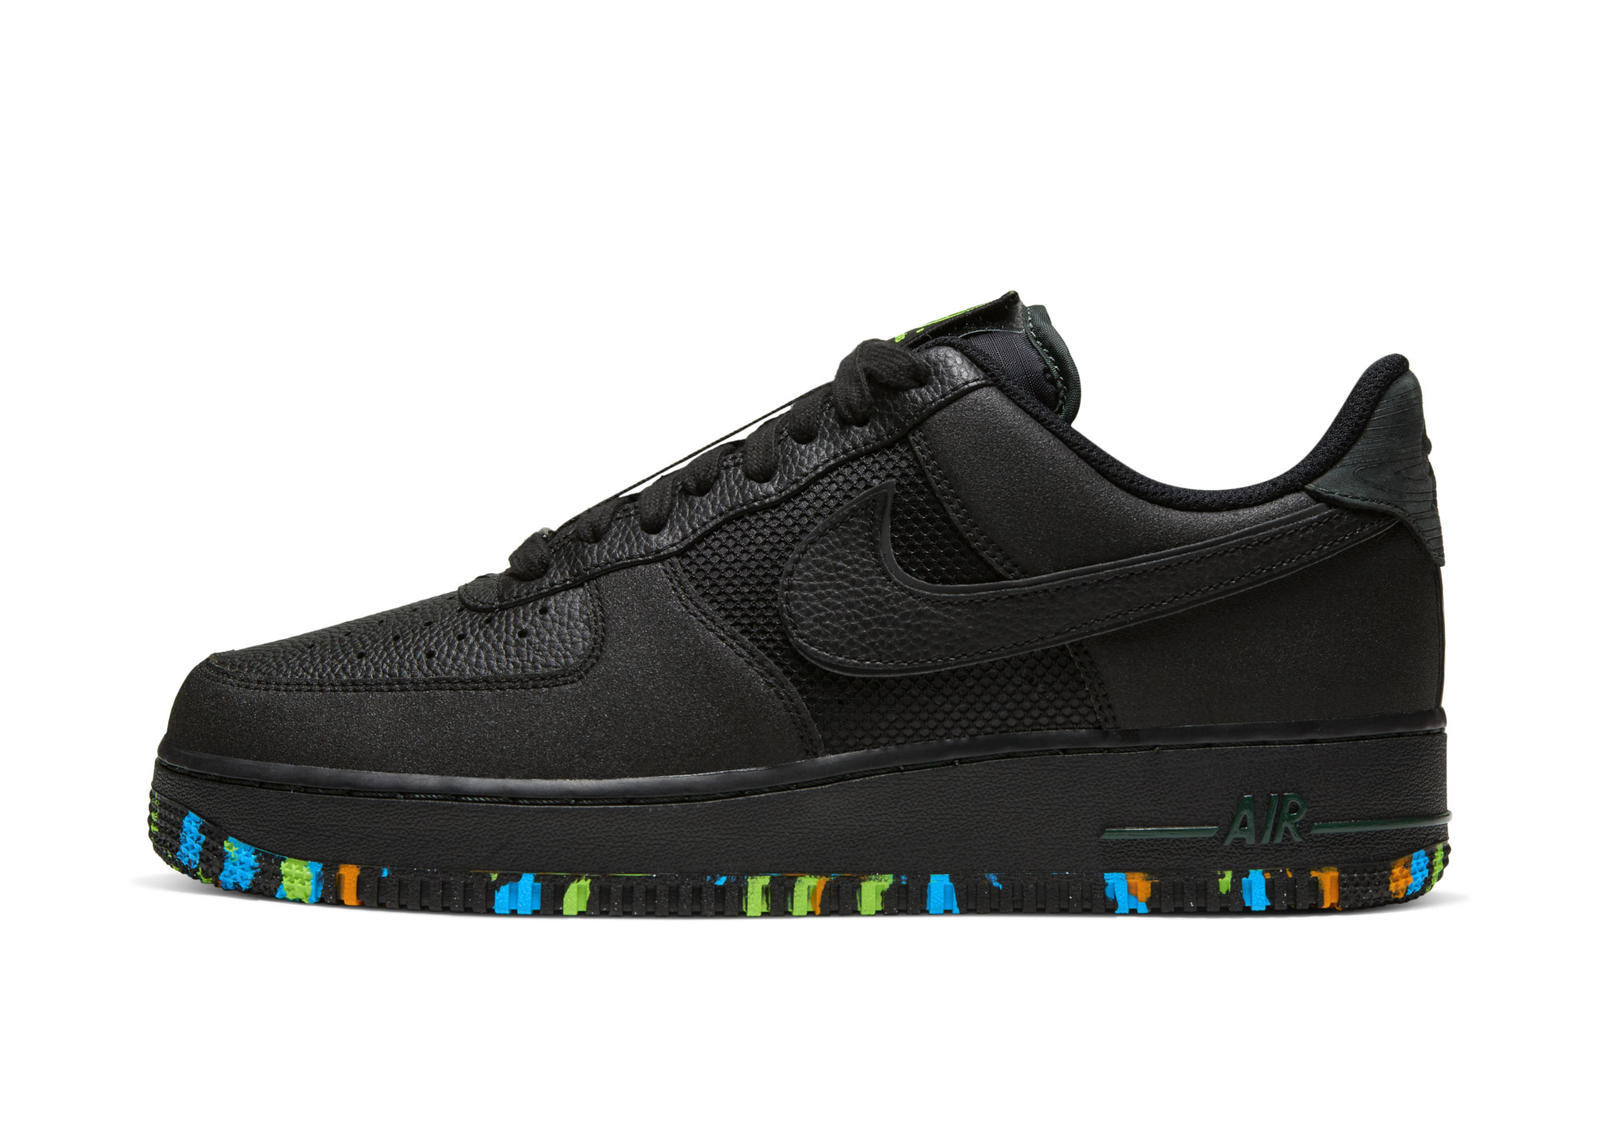 Nike NYC Parks Department Apparel and Air Force 1 Official Images and Release Date 2